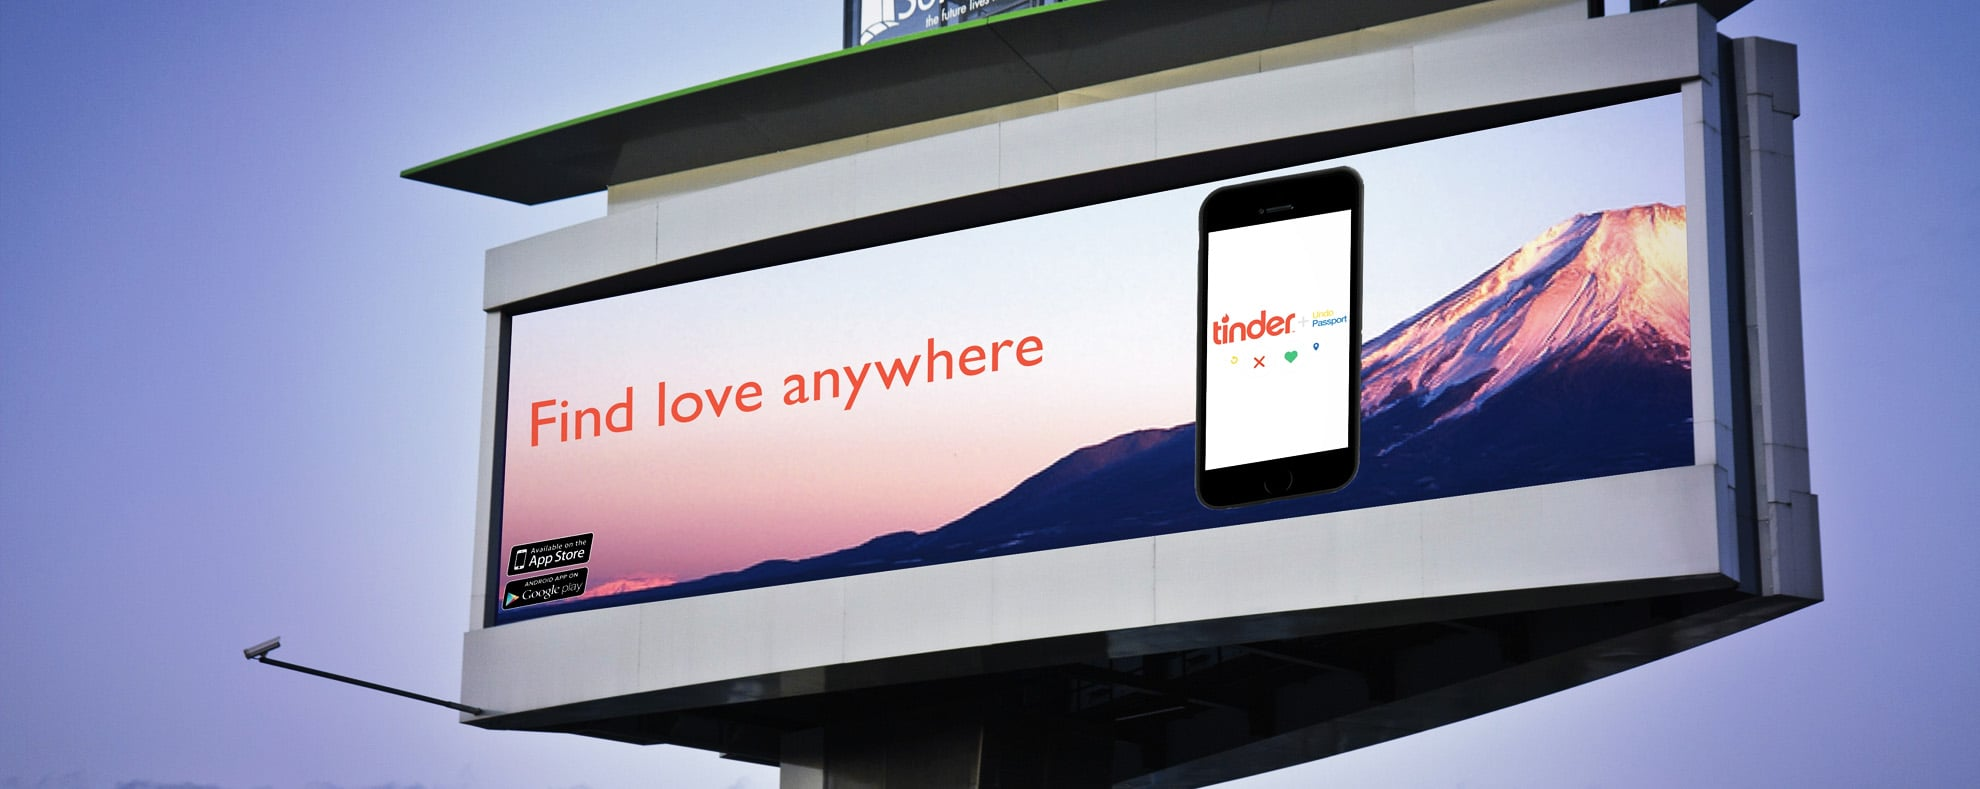 Get your customers attention twice – with sms or billboard | Market